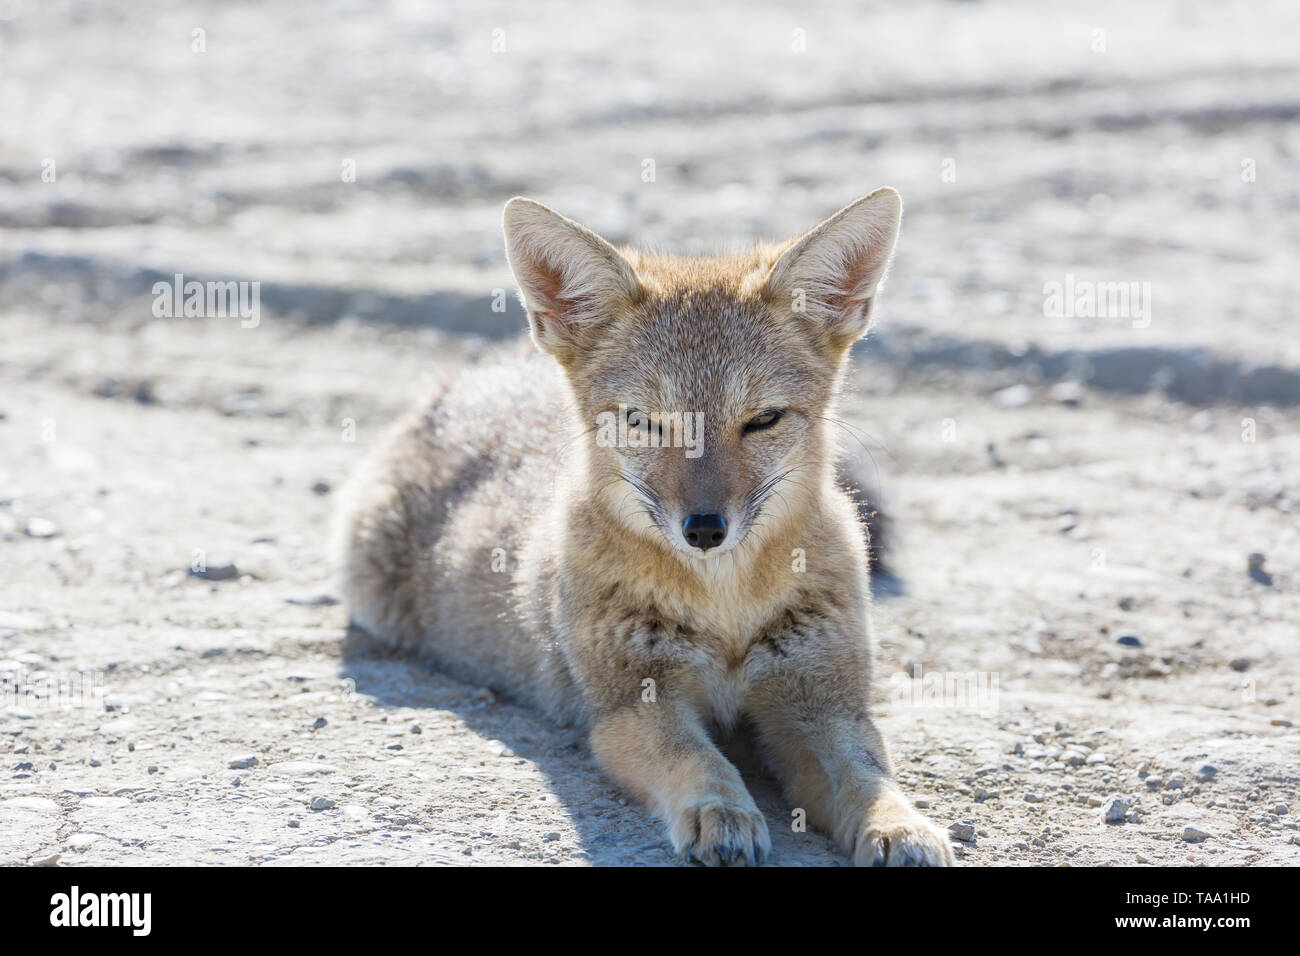 South American gray fox (Lycalopex griseus), Patagonian fox, in Patagonia mountains - Stock Image